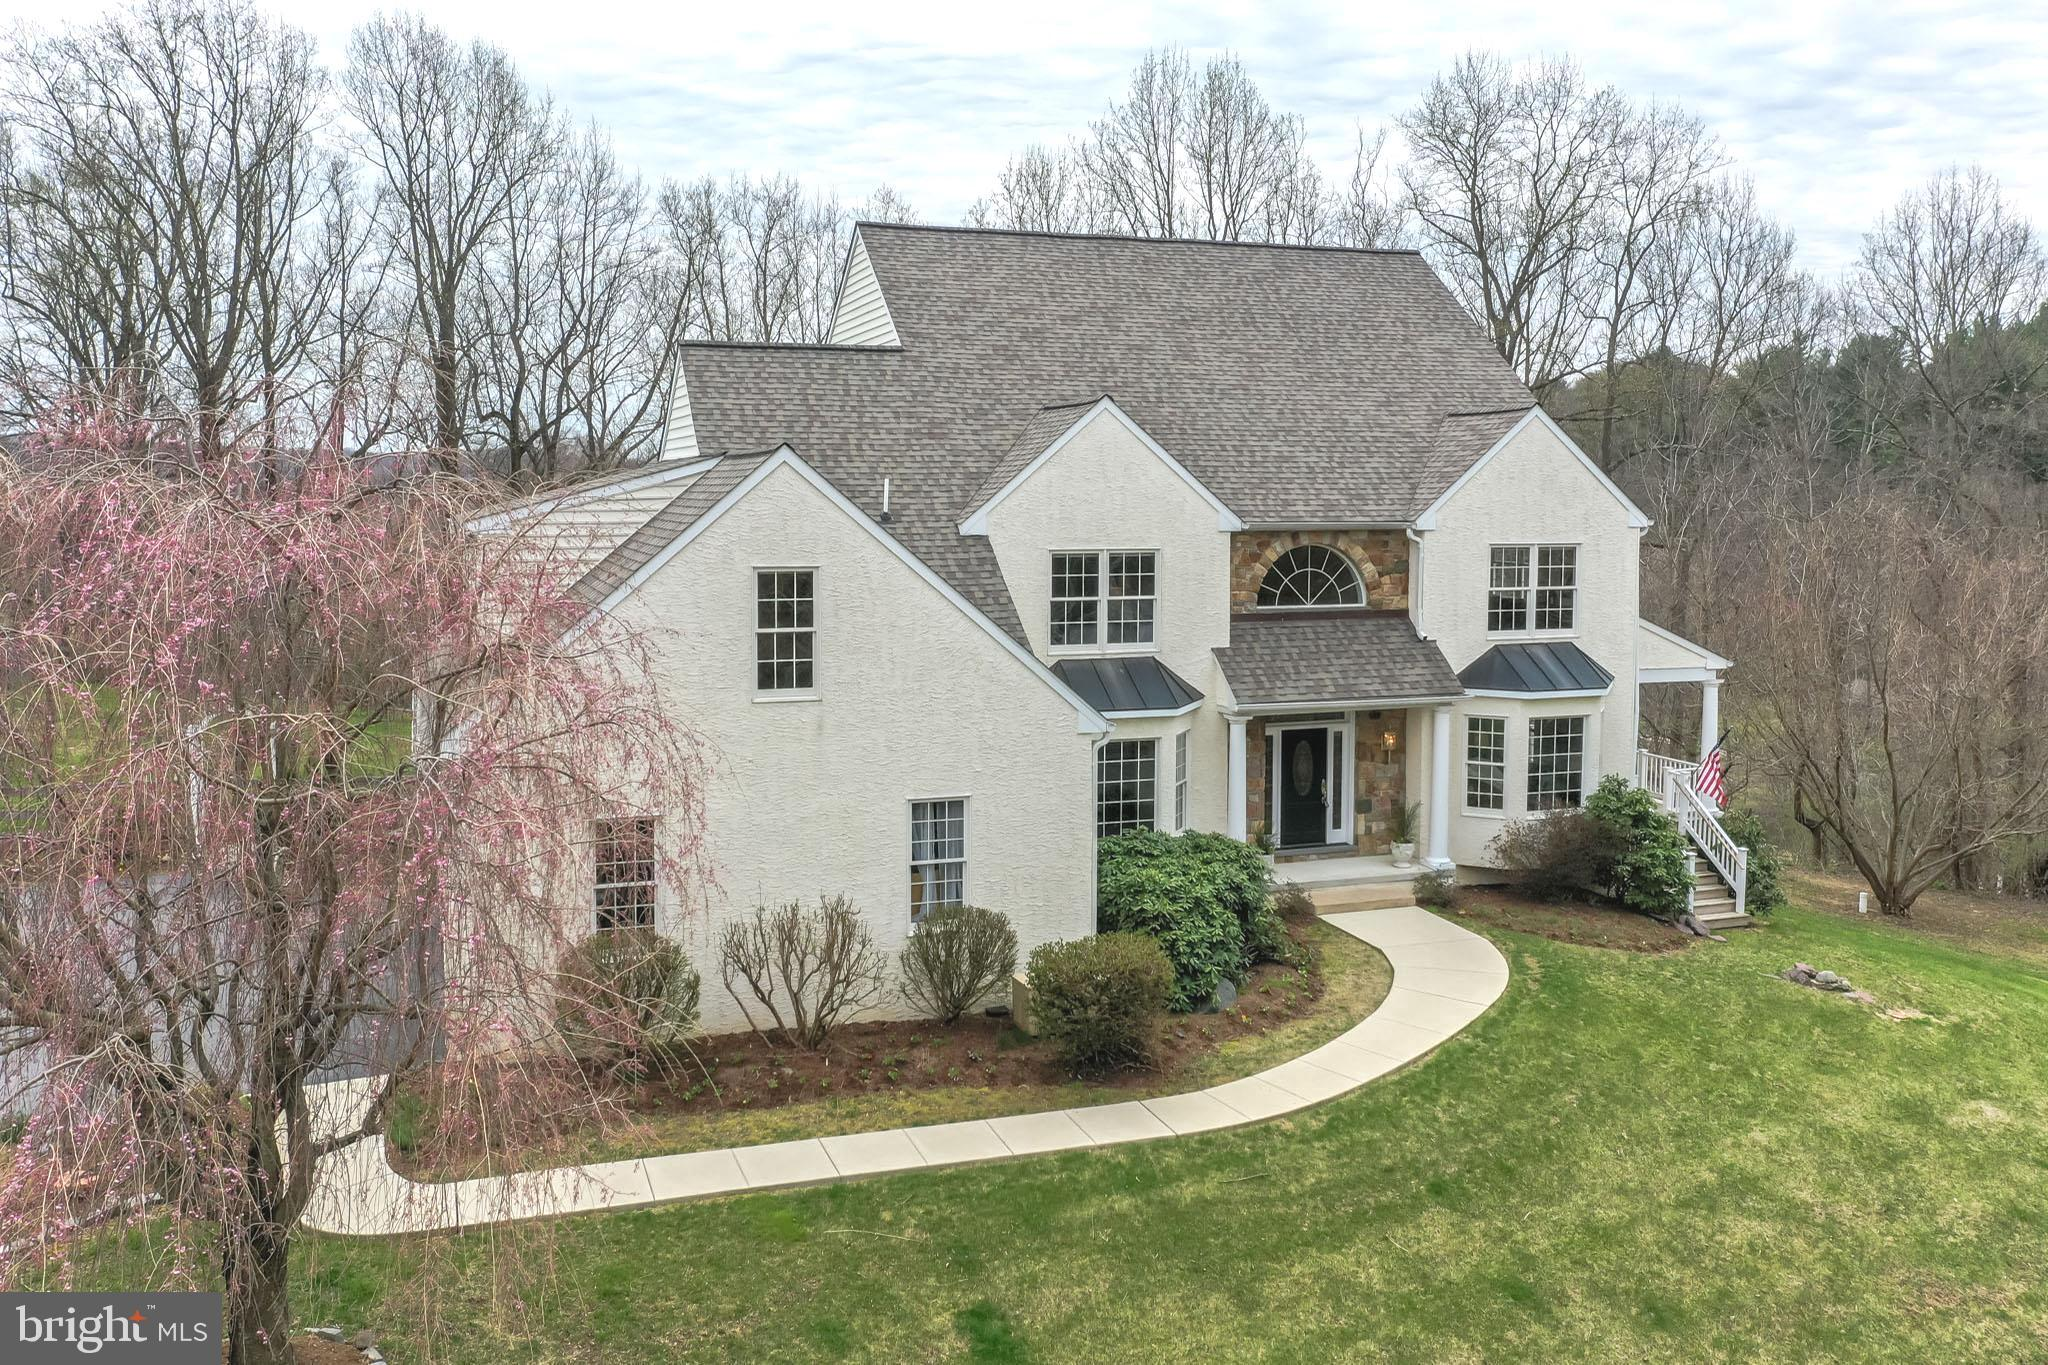 880 SHENTON ROAD, WEST CHESTER, PA 19380